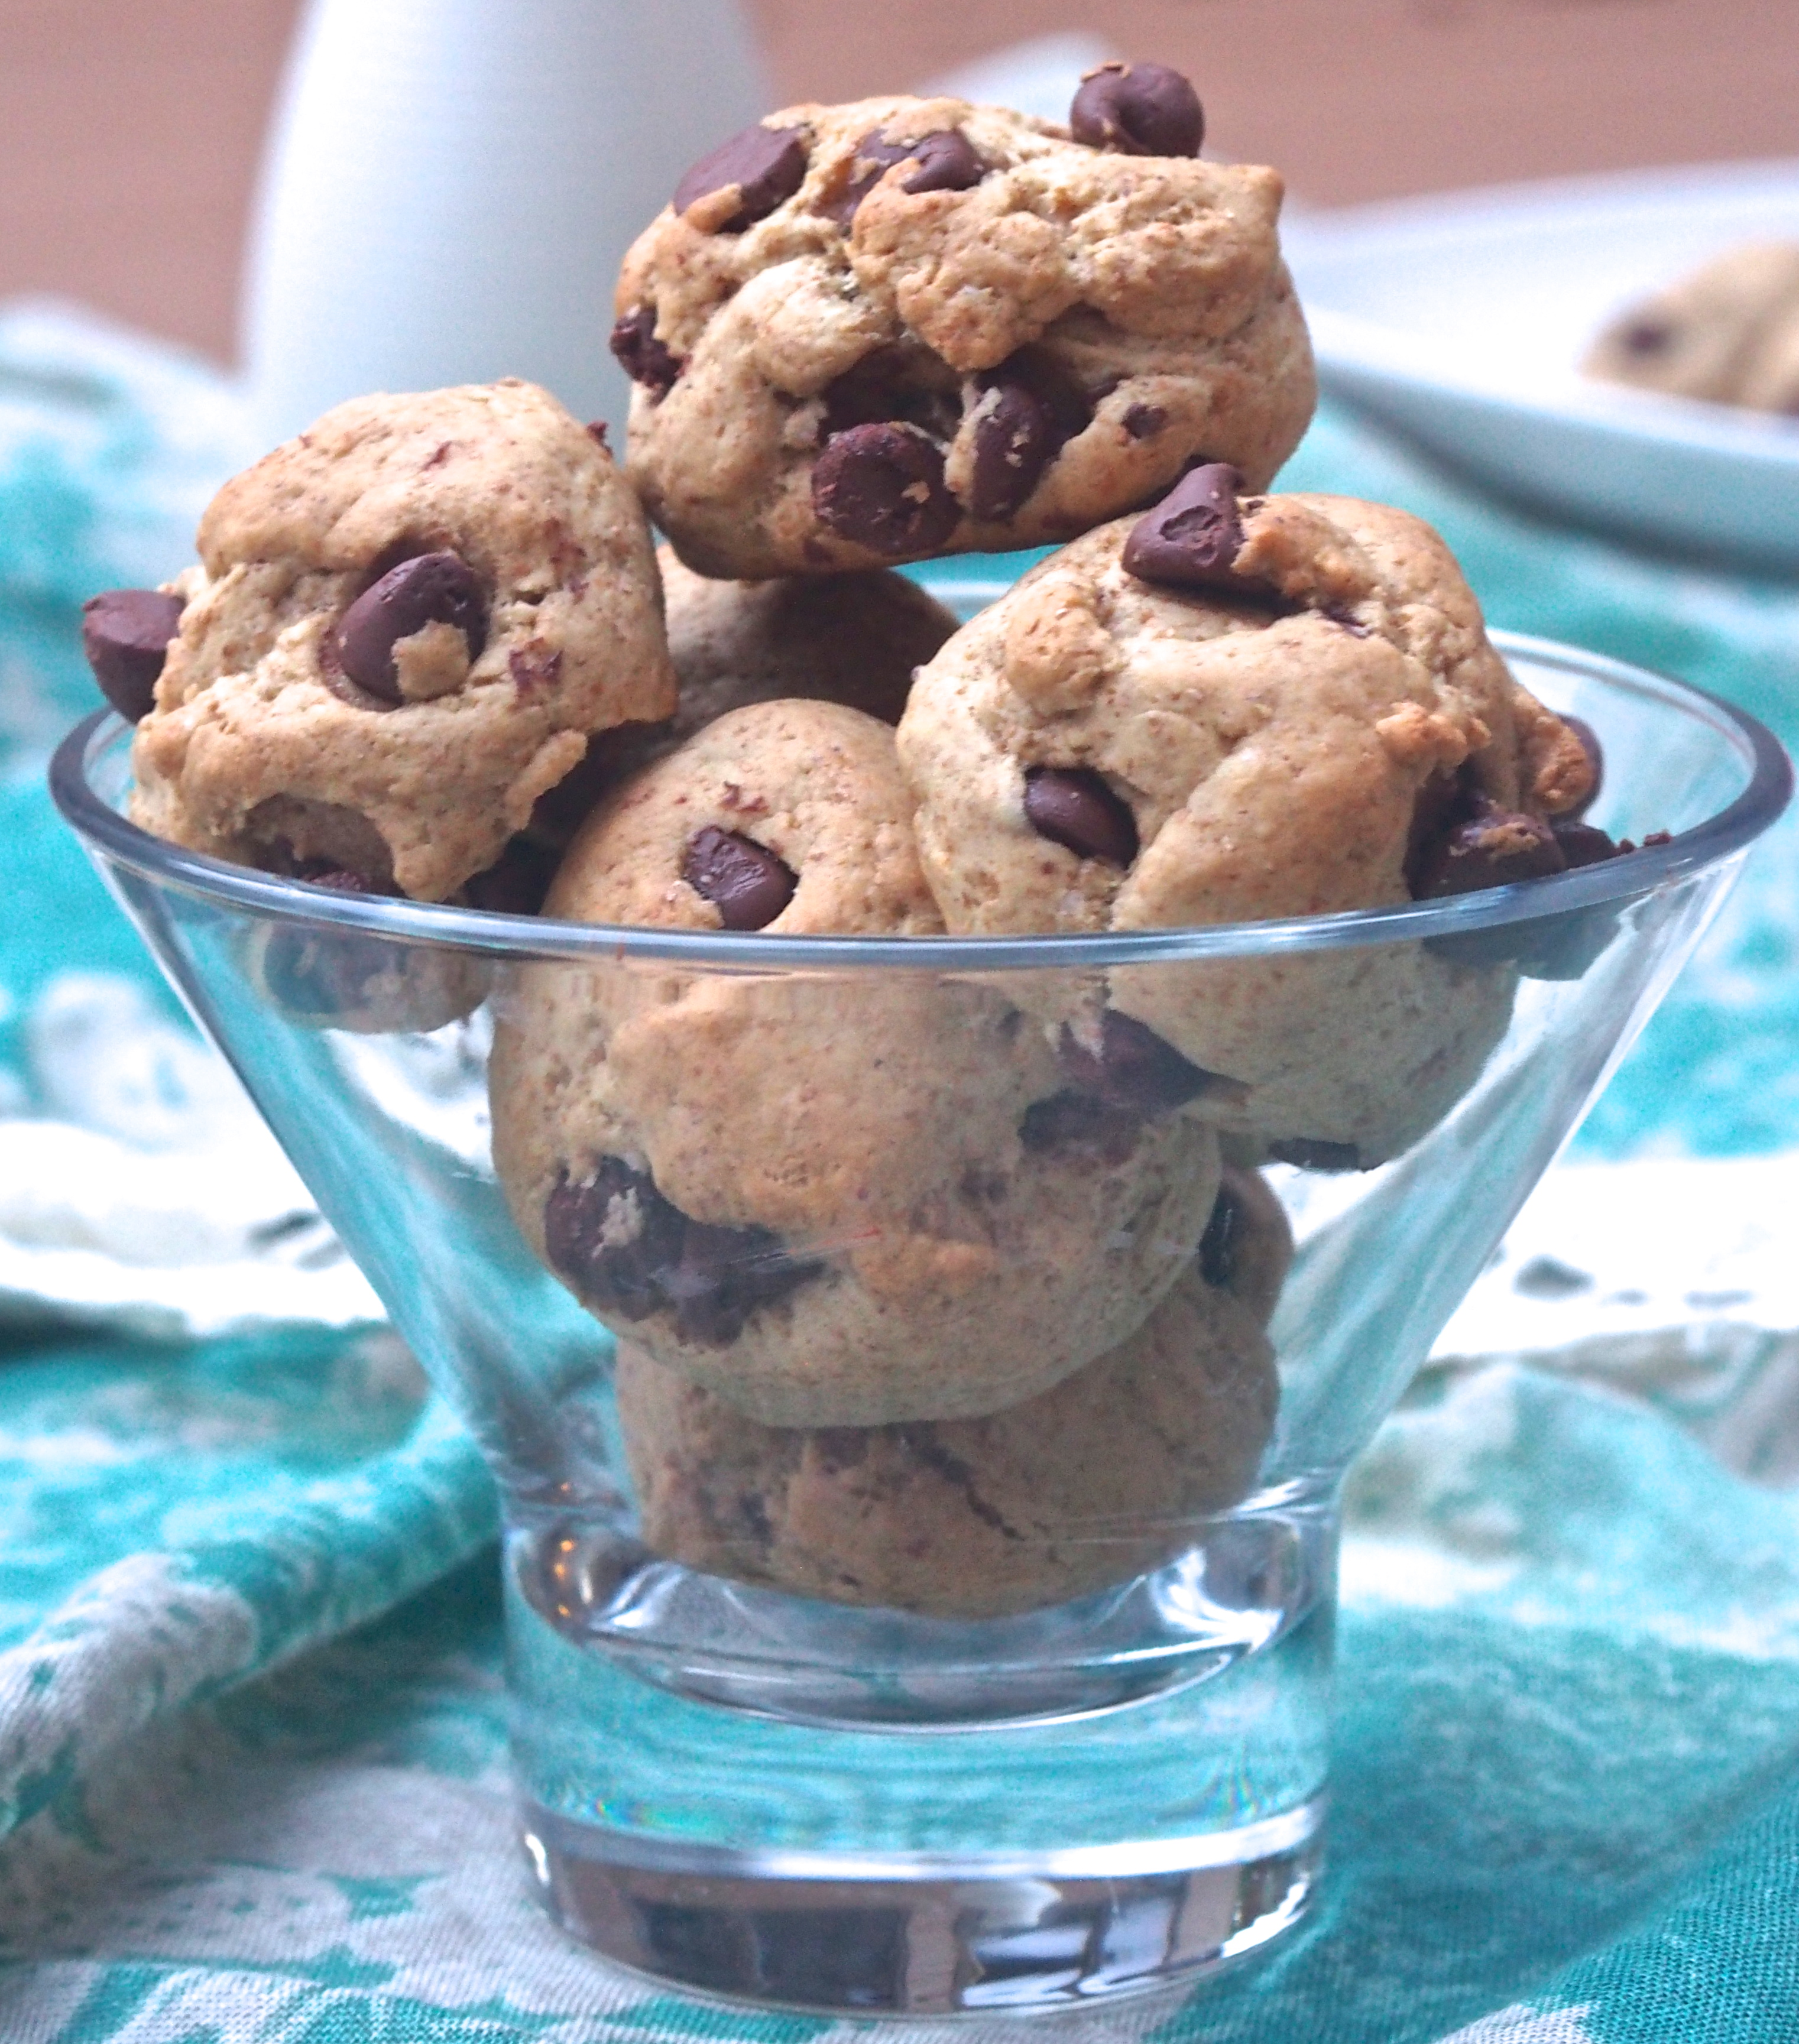 Chocolate Chip Cookie Balls - Not Your Average College Food